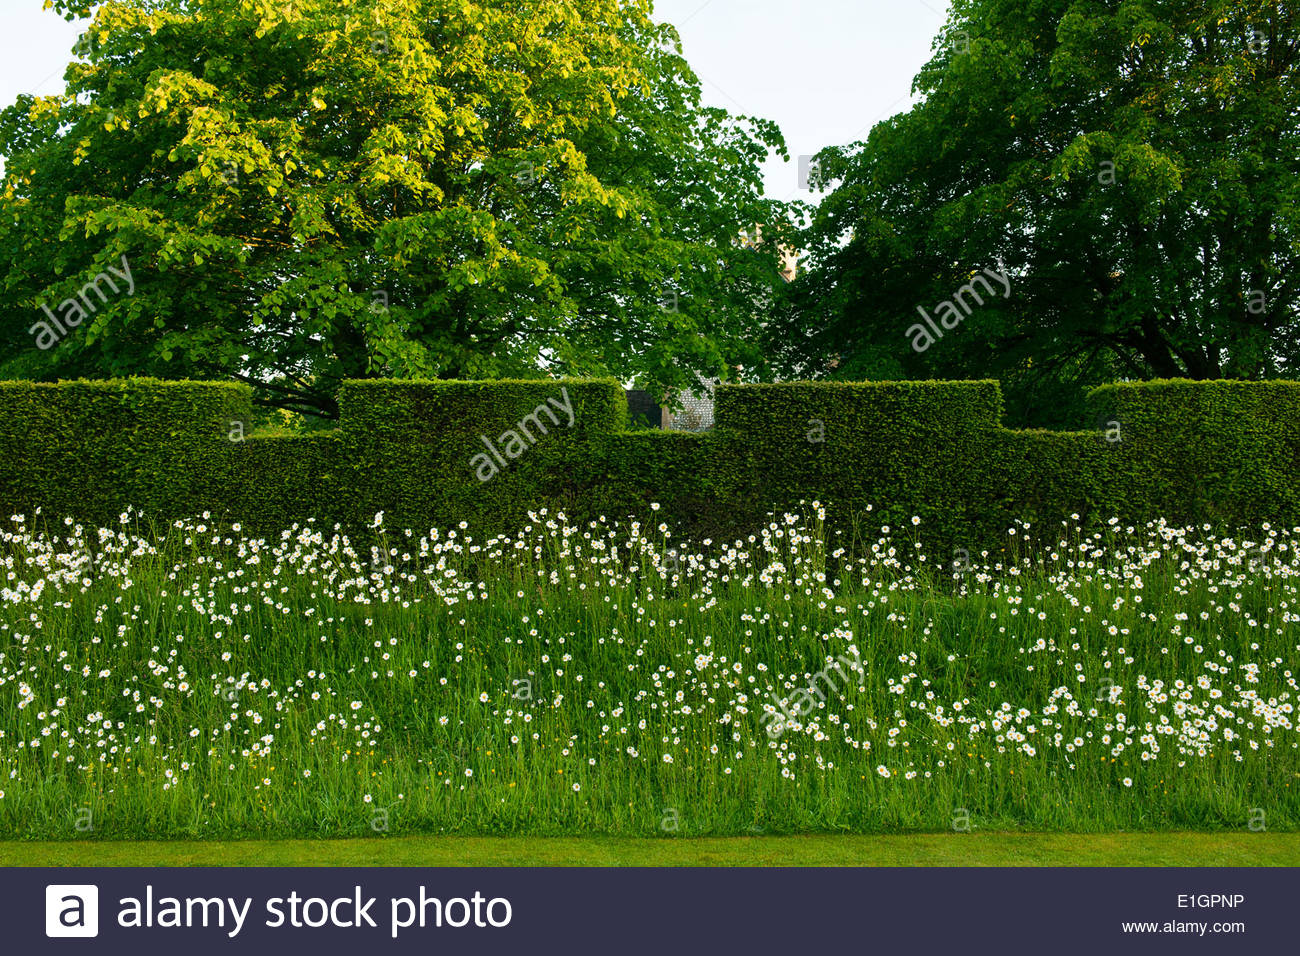 Taxus baccata yew hedge formal castellated wildflower bank daisies Lucanthemum vulgare trees West Dean Sussex garden plant - Stock Image